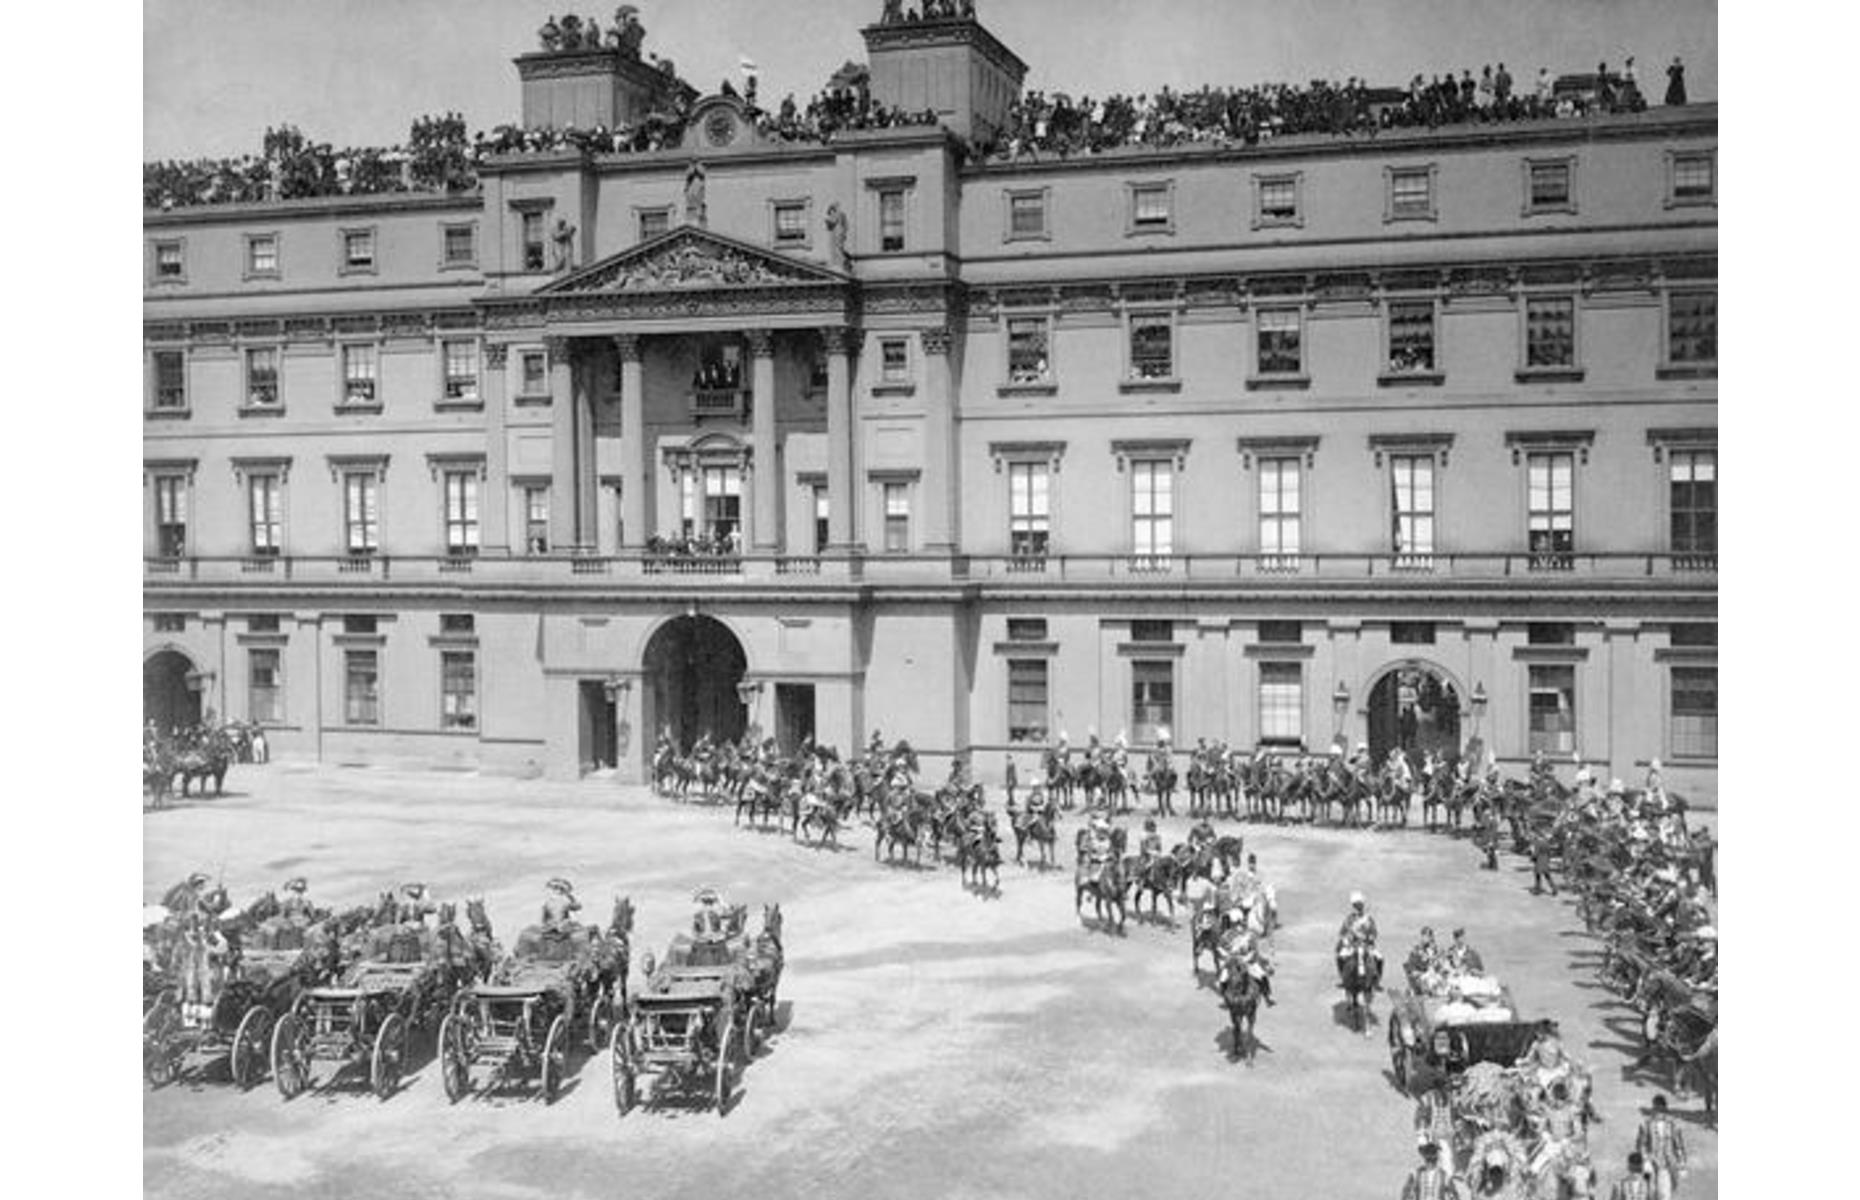 Slide 12 of 51: Shown here during Queen Victoria's Diamond Jubilee in 1897, Buckingham Palace is one of the UK's most famous landmarks and has served as an official residence of the Royal Family since 1837, remaining the administrative headquarters of the Queen today. The palace, which has 775 rooms and is set among 39 acres of grounds, has held public tours every summer since 1993. Another popular event with visitors is the daily Changing of the Guards ceremony outside the Palace gates, although it is currently suspended due to COVID-19.